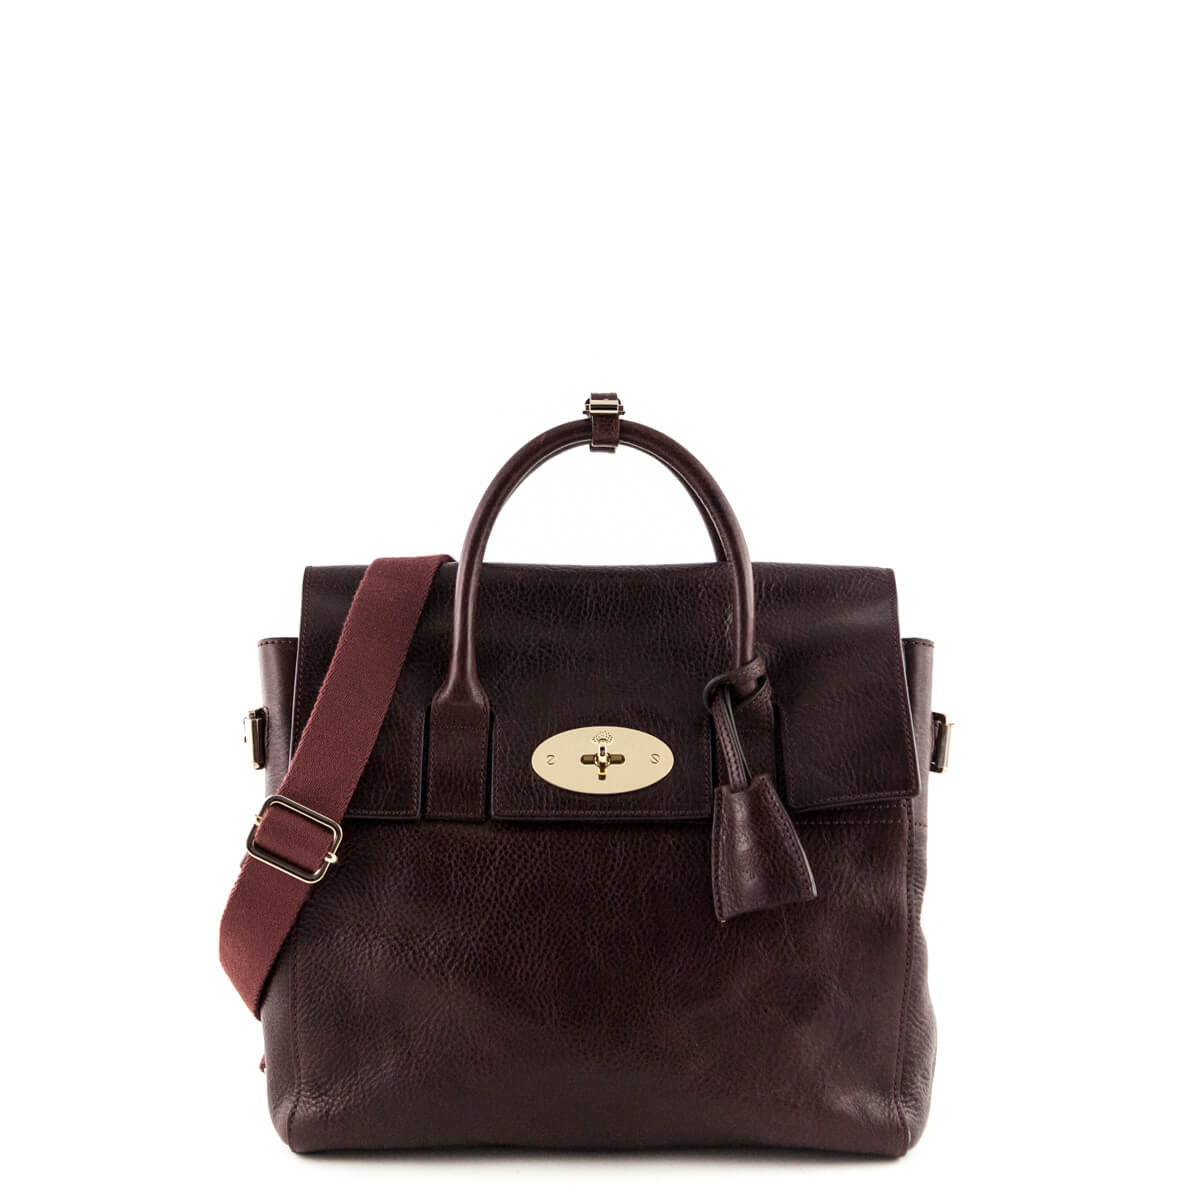 ed17743b2902 ... coupon for mulberry oxblood cara delevingne convertible backpack love  that bag preowned authentic designer handbags b340a